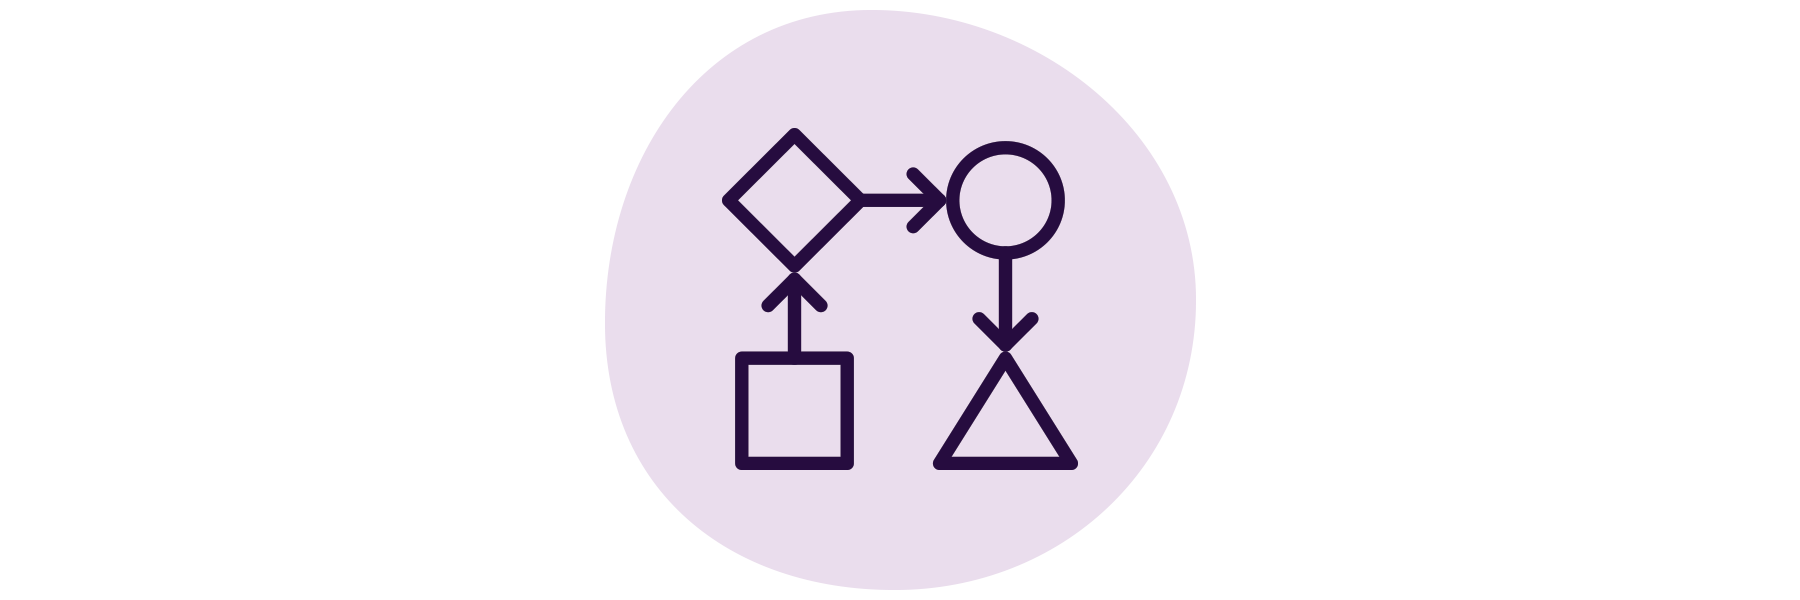 A purple icon with a square and an arrow that points up to a diamond that has an arrow pointing across to a circle which has an arrow that points down towards a triangle. It's almost as complicated as traditional workplace benefits.